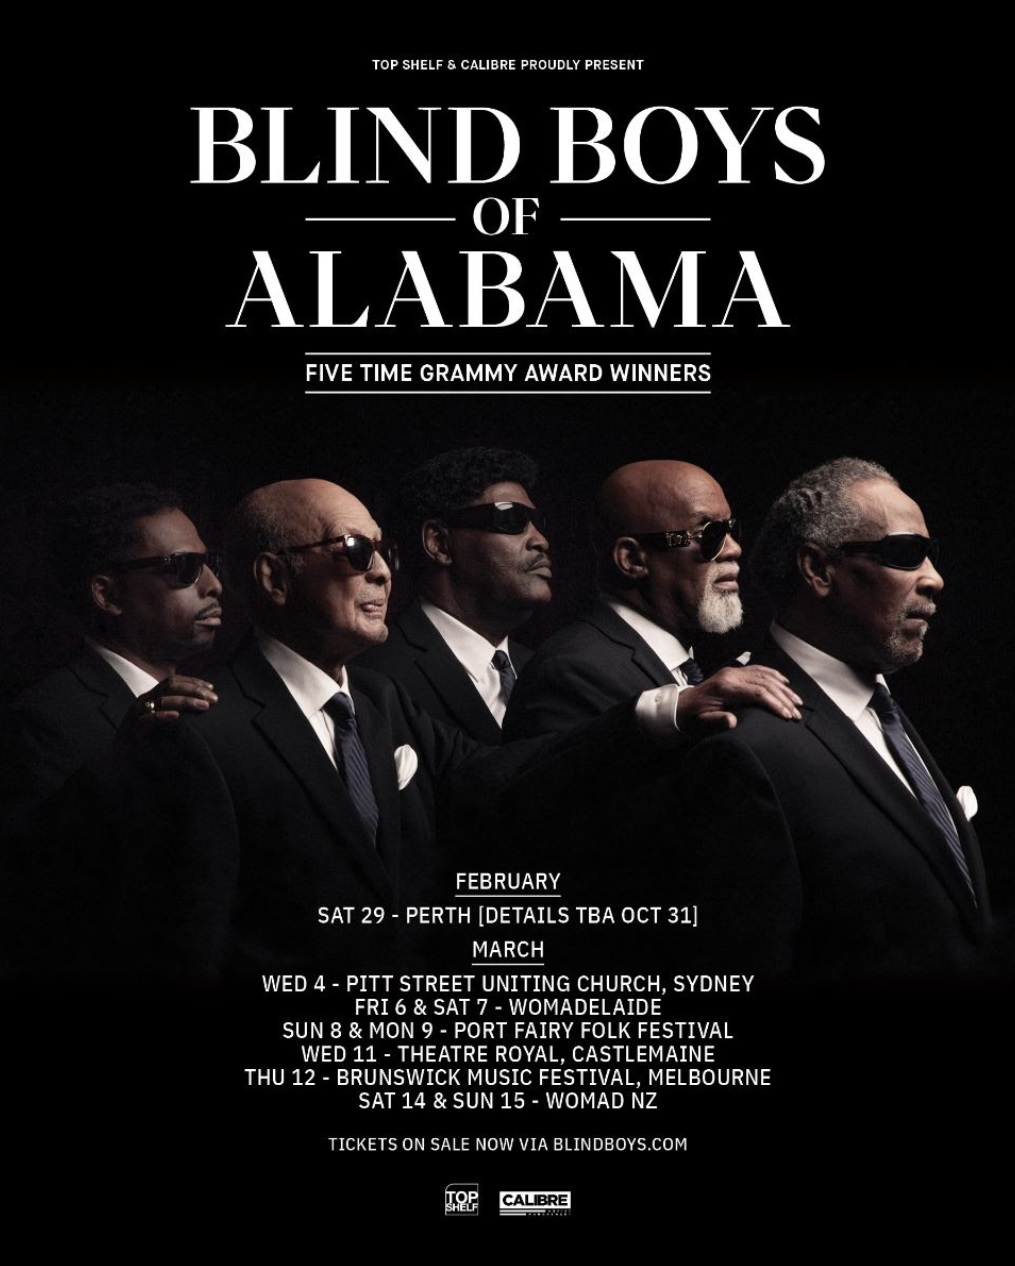 Alabama Tour 2020.The Blind Boys Of Alabama Announce Australian Tour Five Time